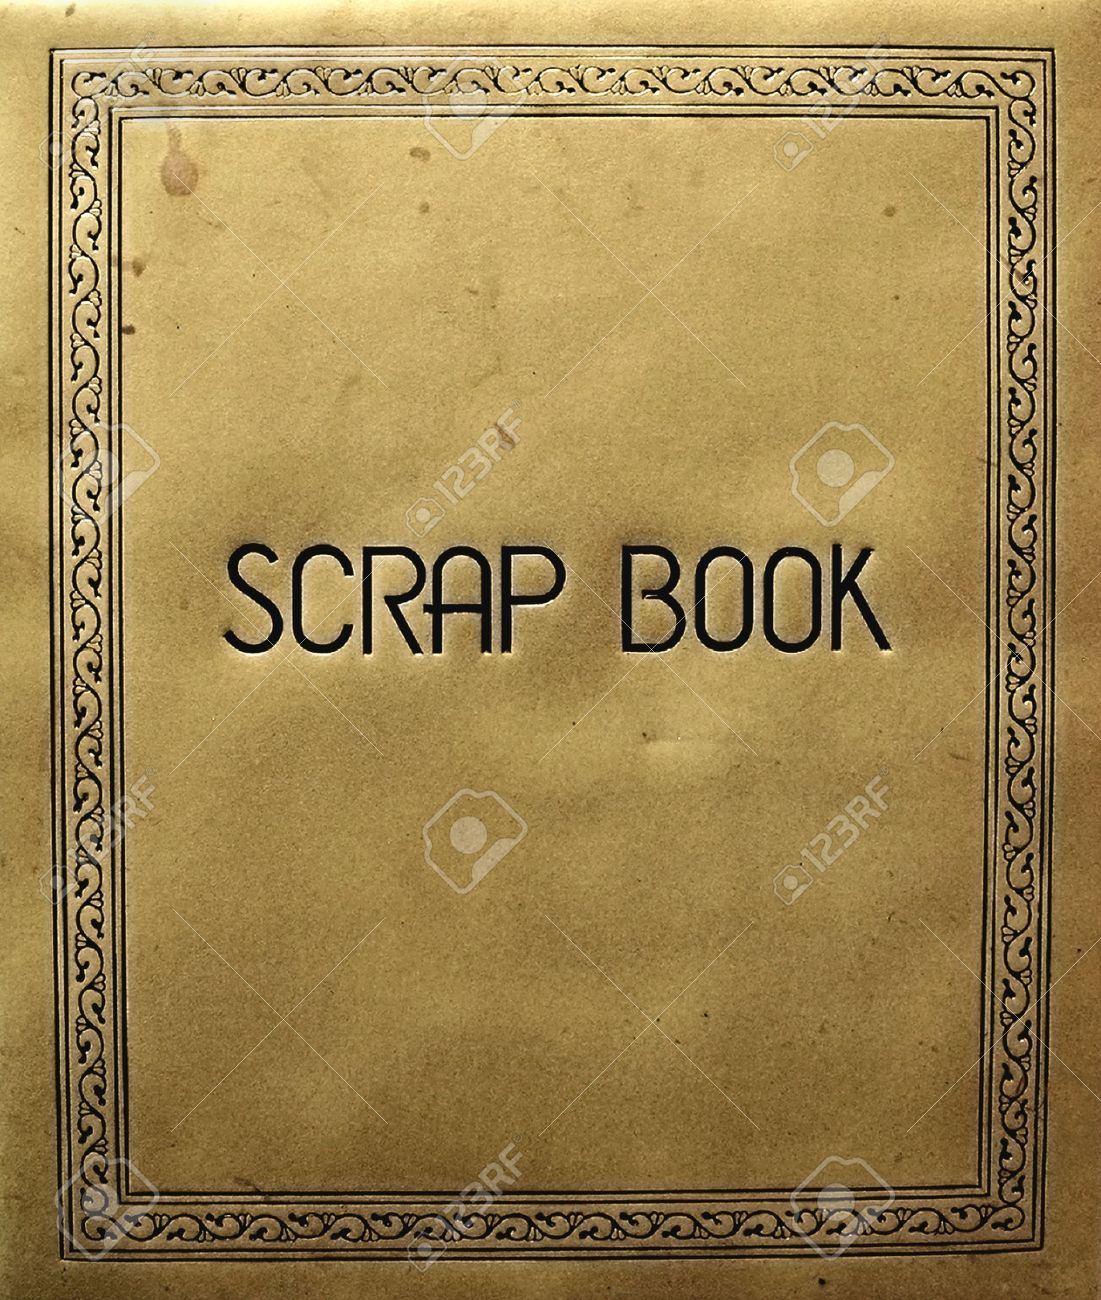 Scrapbook cover - Stock Photo Old Scrapbook Cover